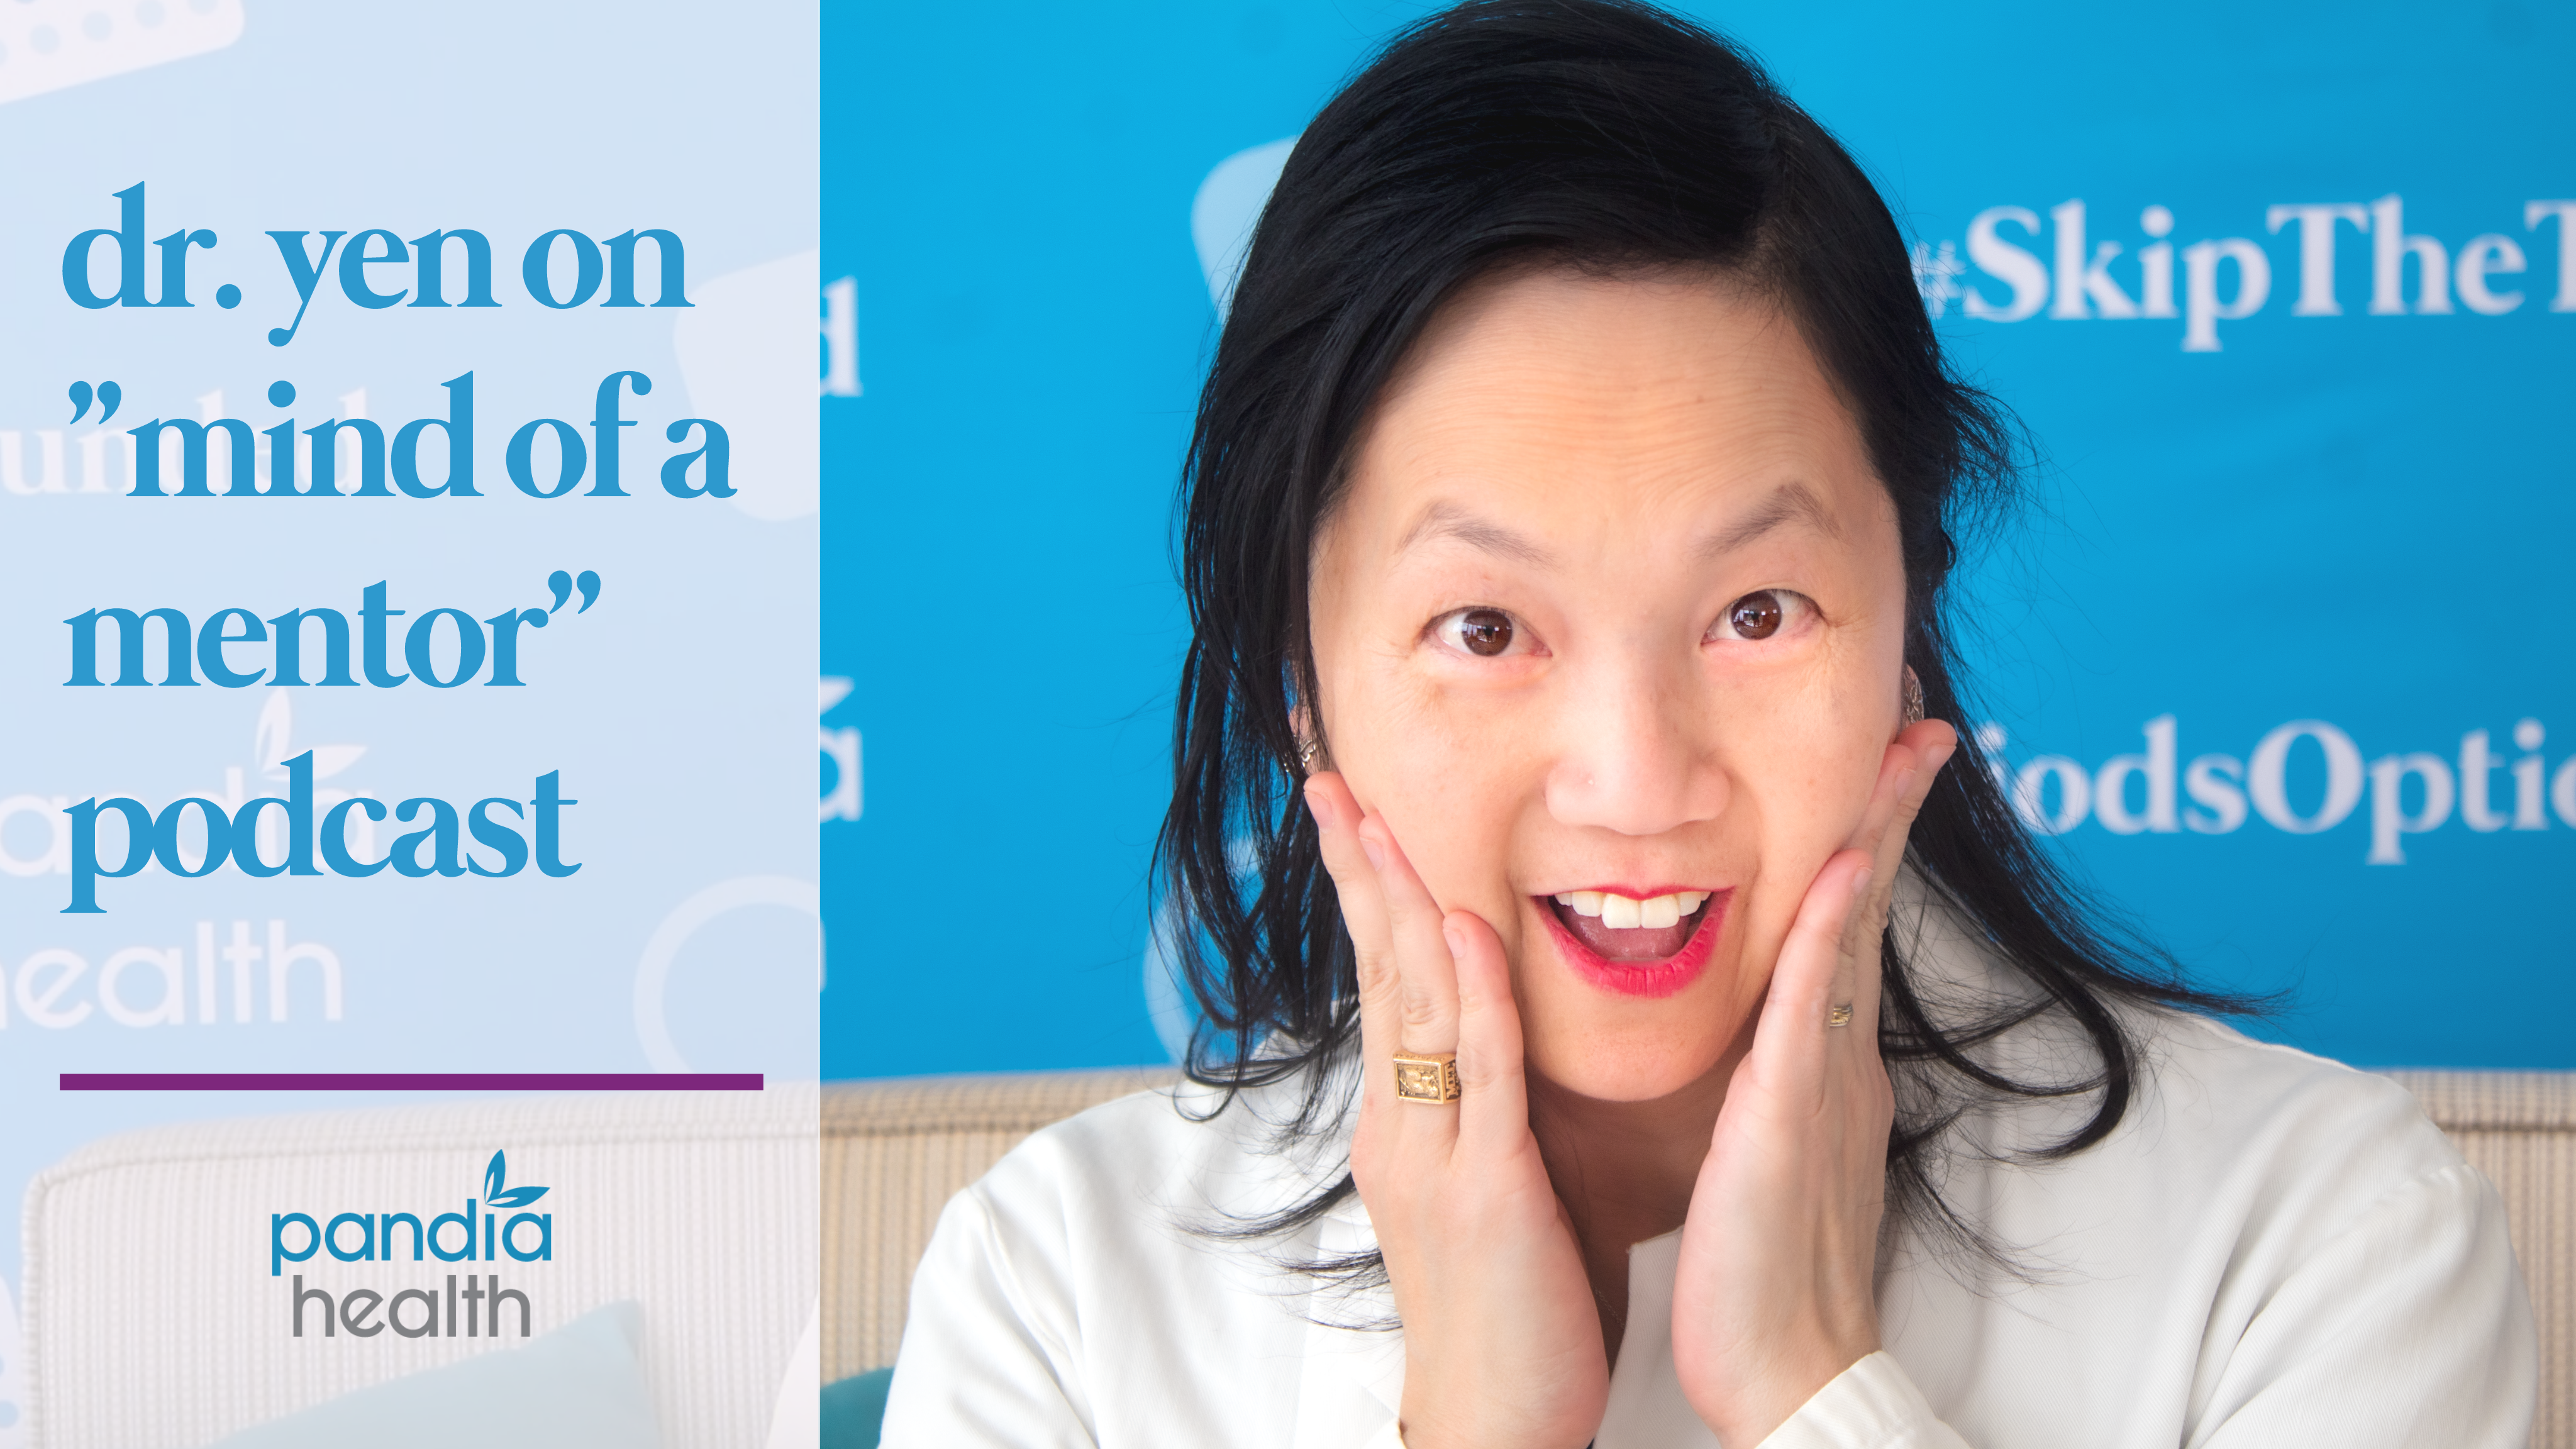 Dr. Sophia Yen smiling in surprise with hands against her cheeks